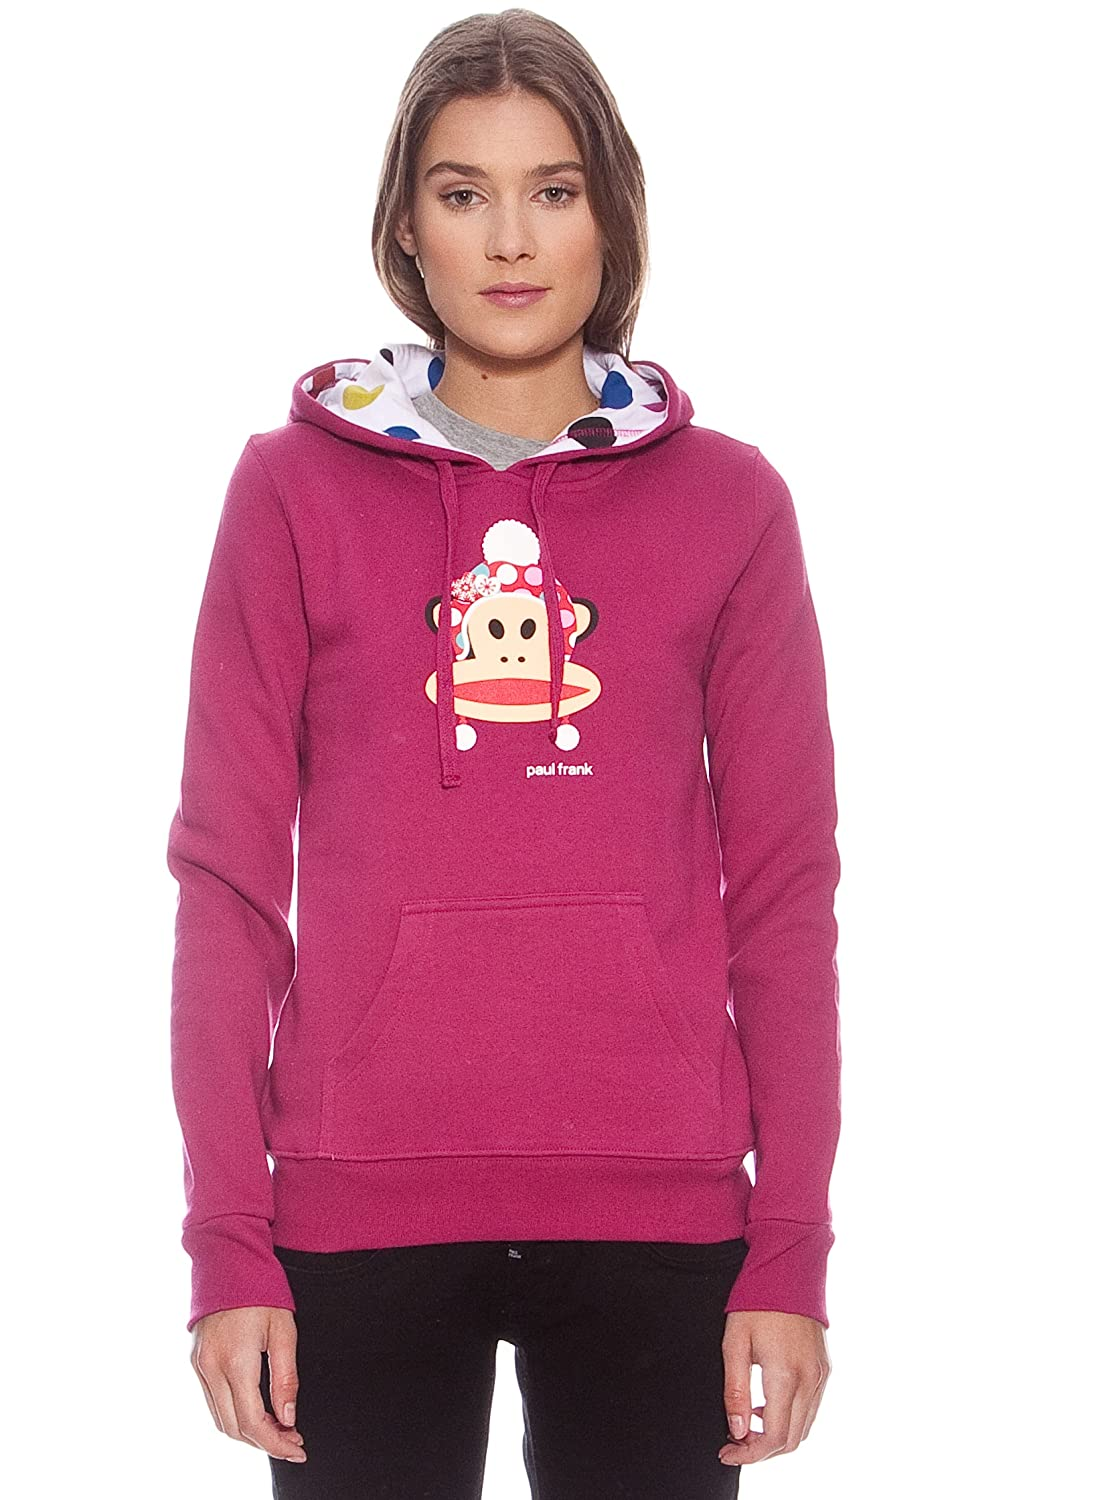 Paul & Frank Sudadera Julius Winter Fucsia L: Amazon.es: Ropa y accesorios